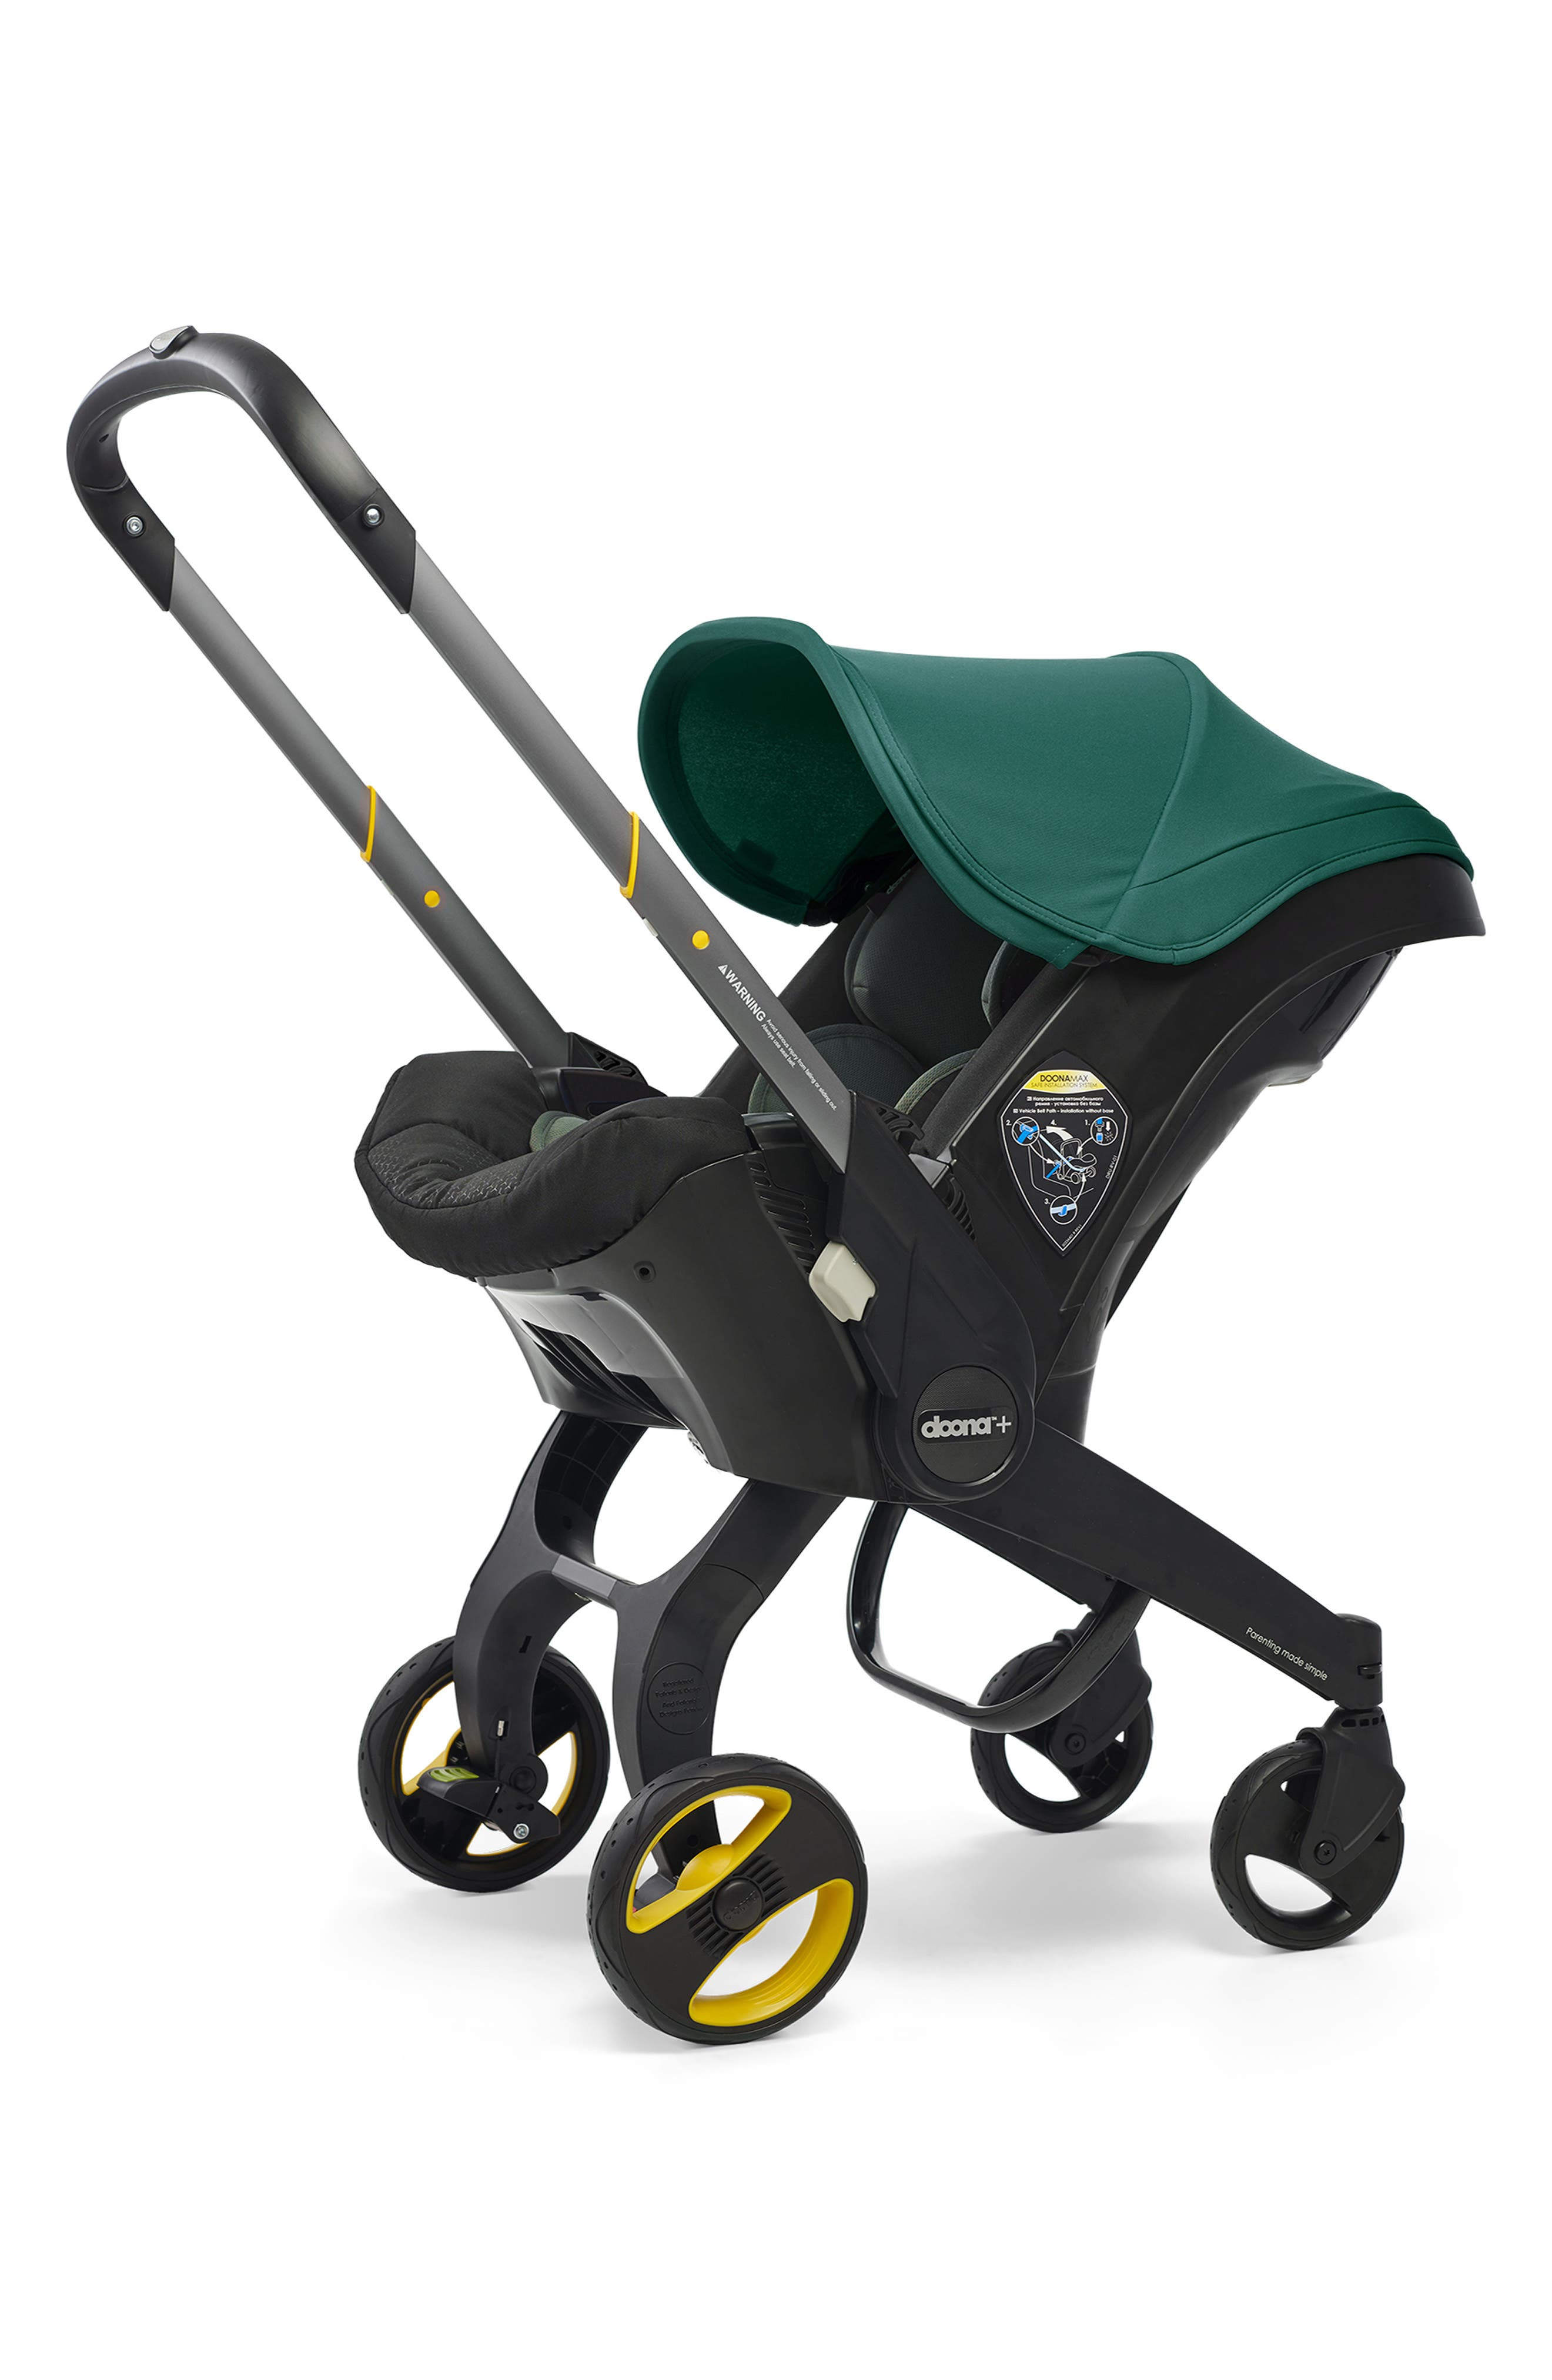 Infant Doona Convertible Infant Car Seatcompact Stroller System With Base Size One Size  Green